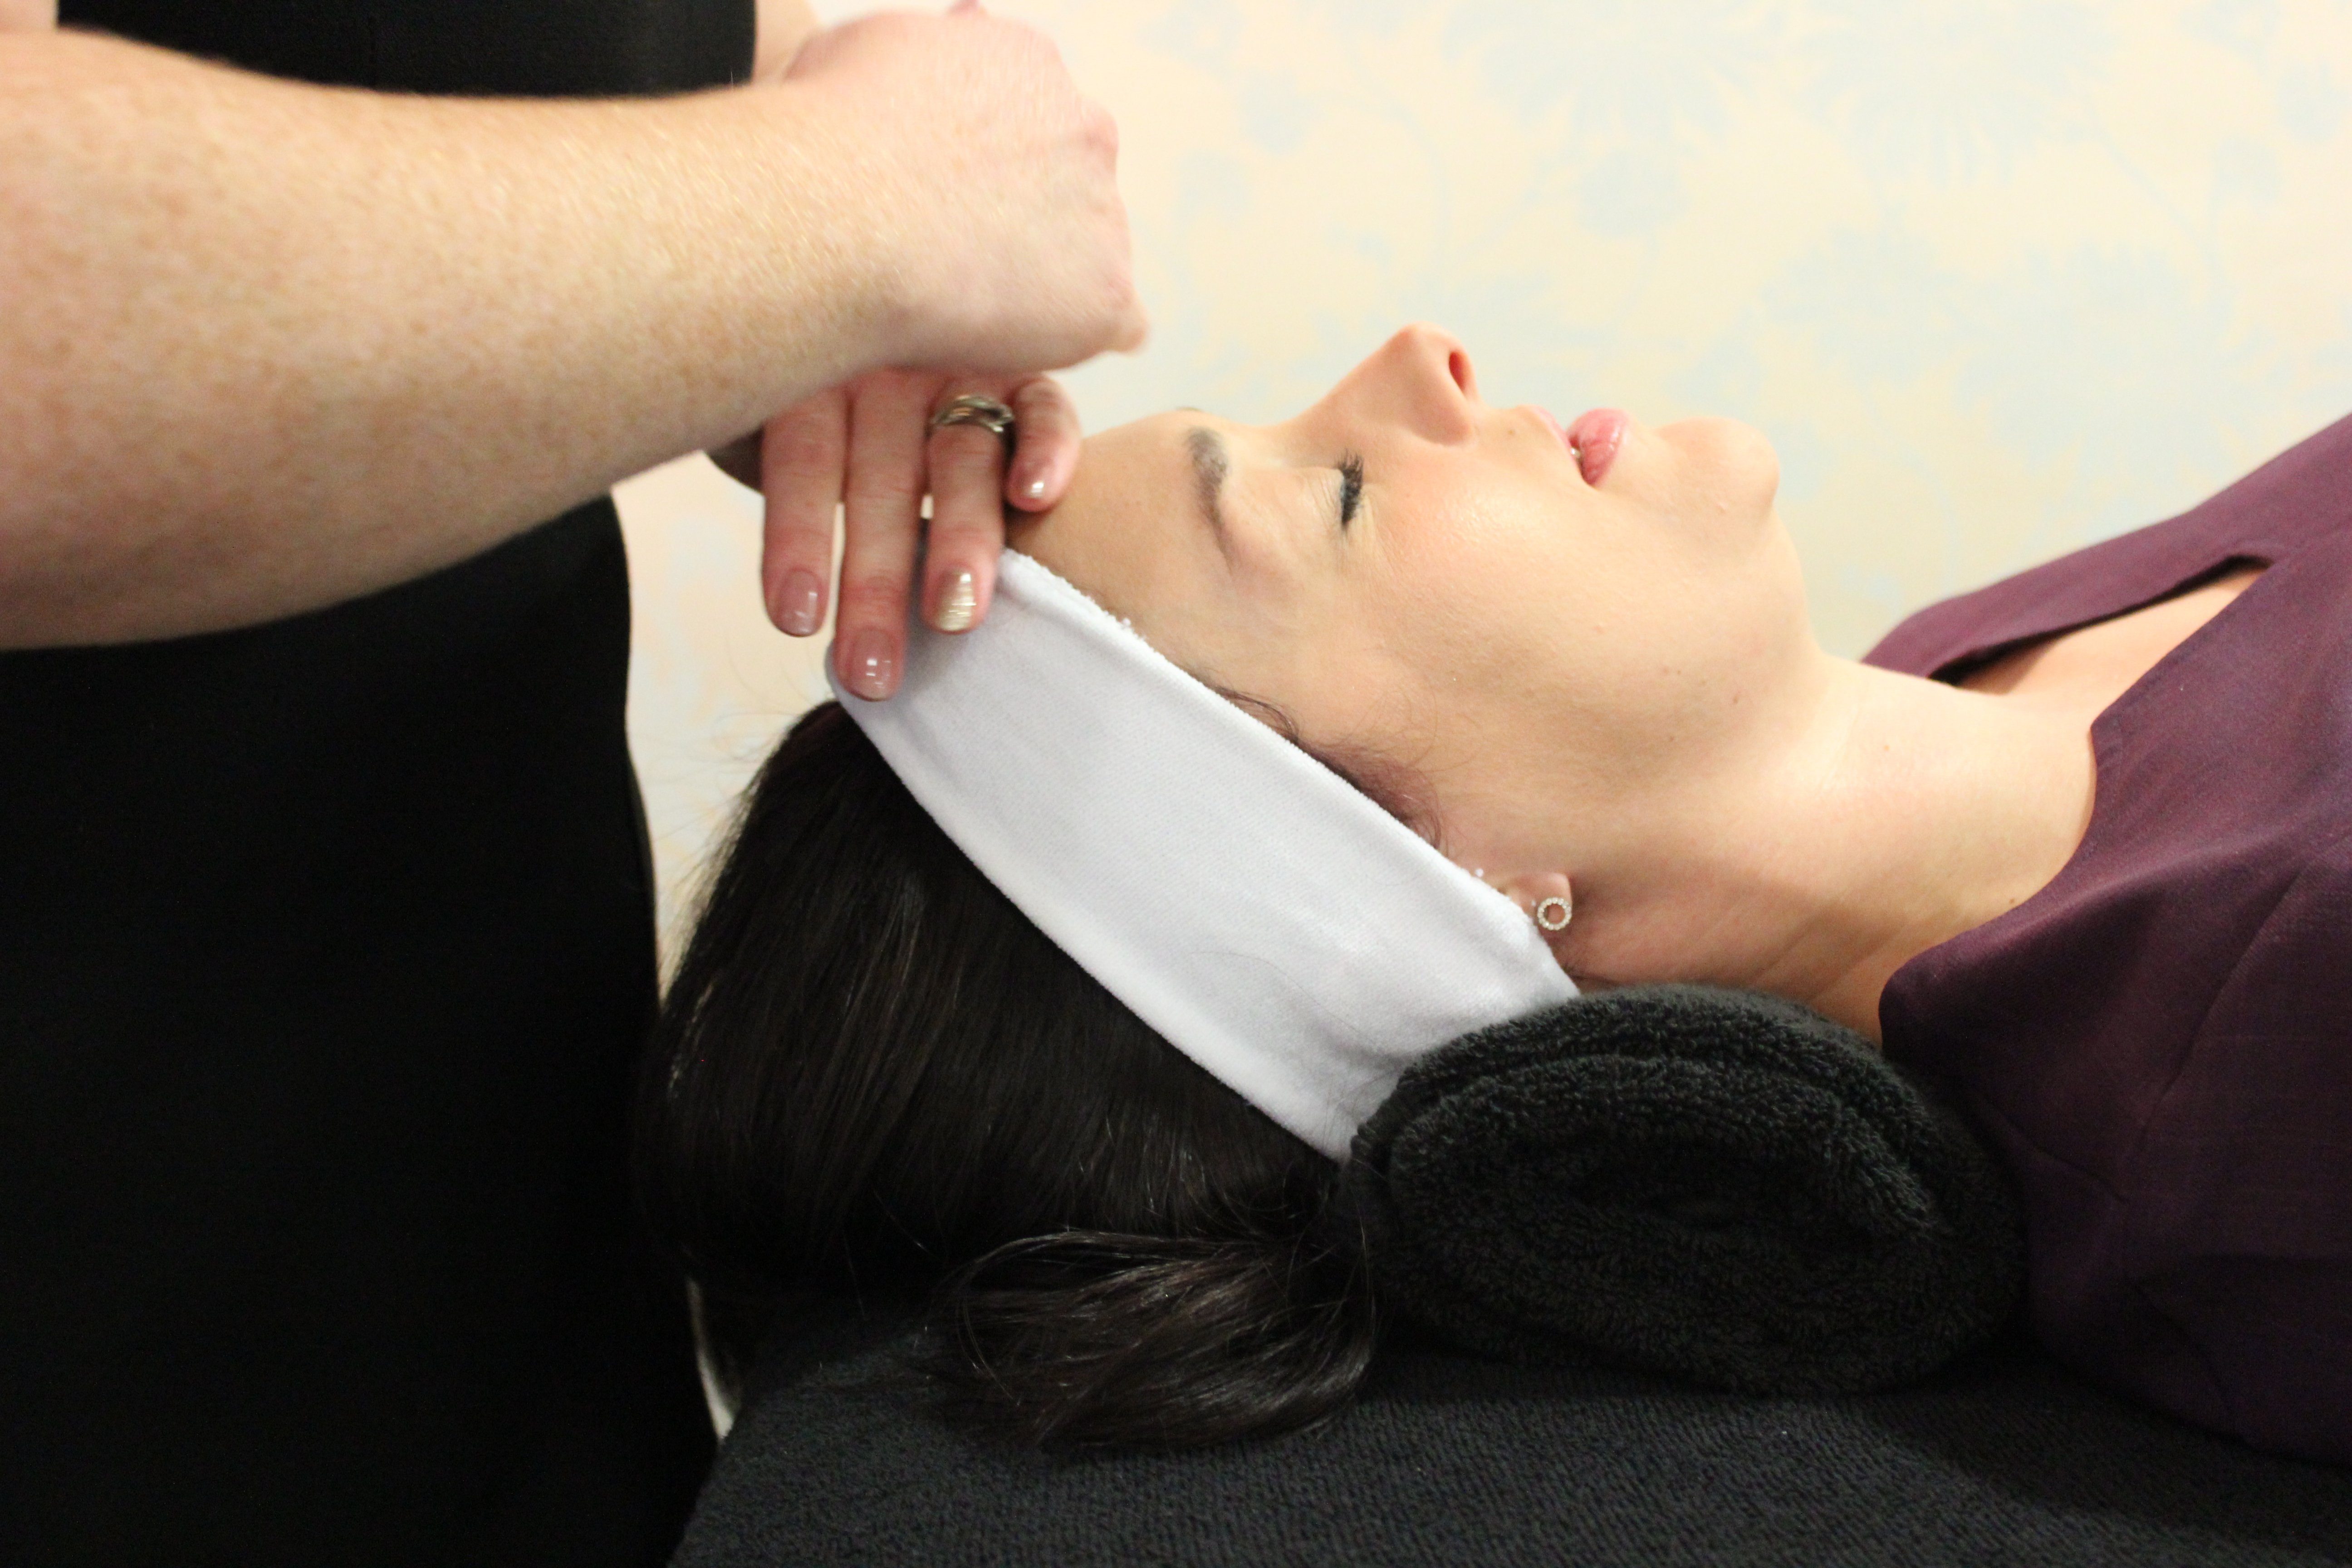 Close up shot of the head of a woman who is receiving an Indian head massage